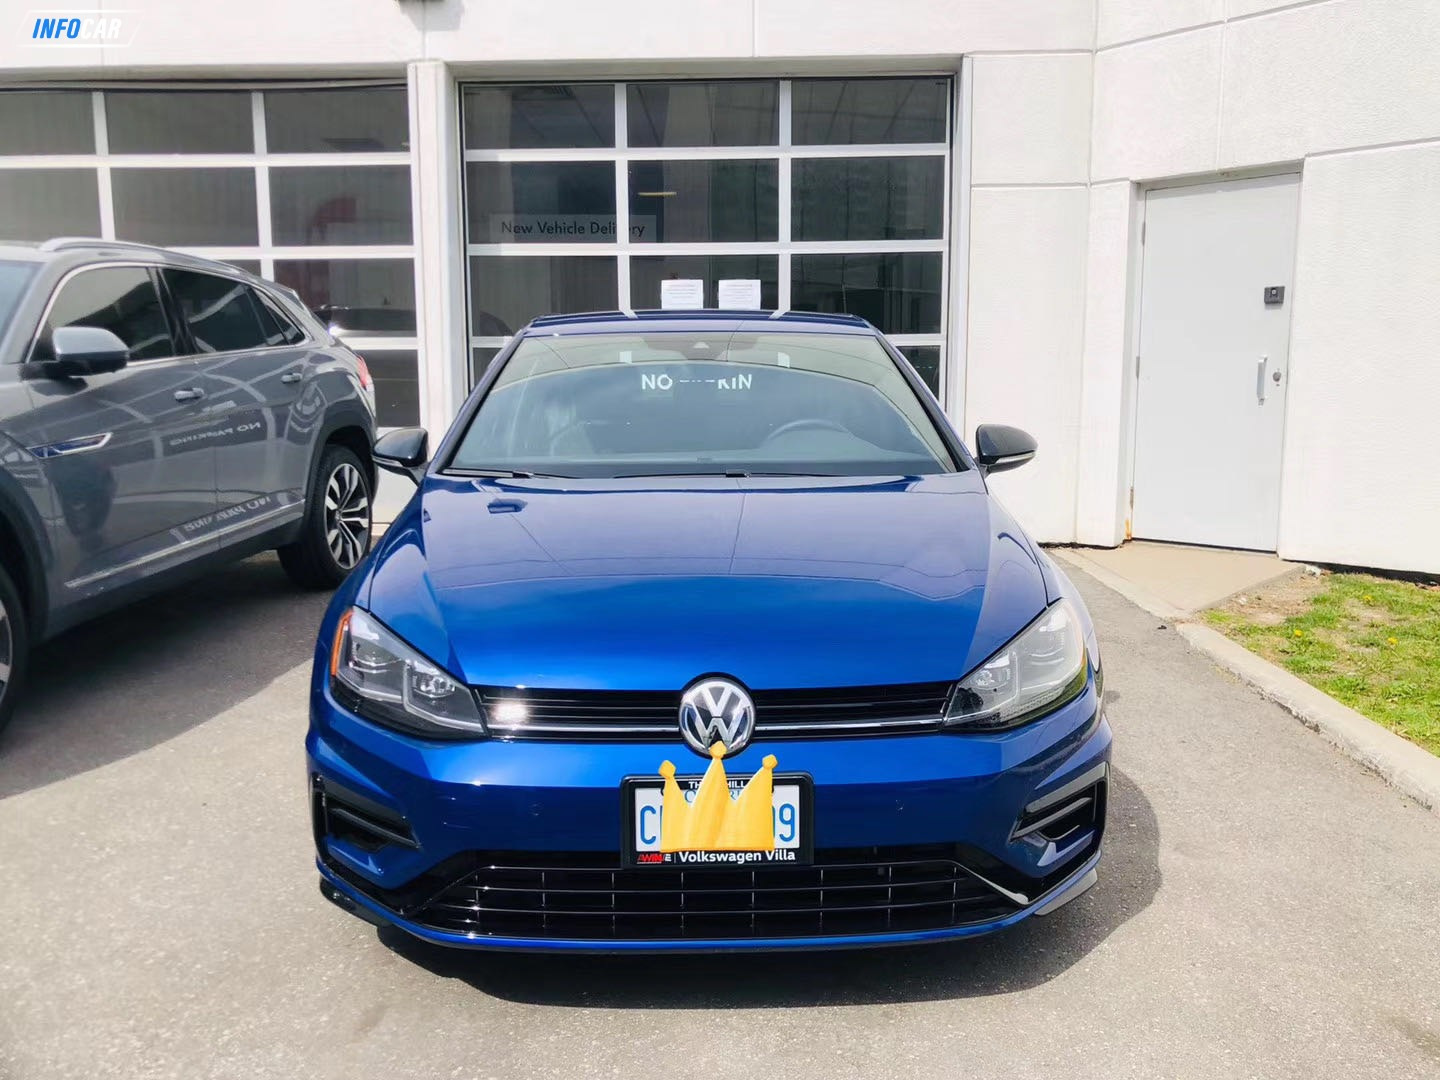 2020 Volkswagen Golf R  - INFOCAR - Toronto's Most Comprehensive New and Used Auto Trading Platform